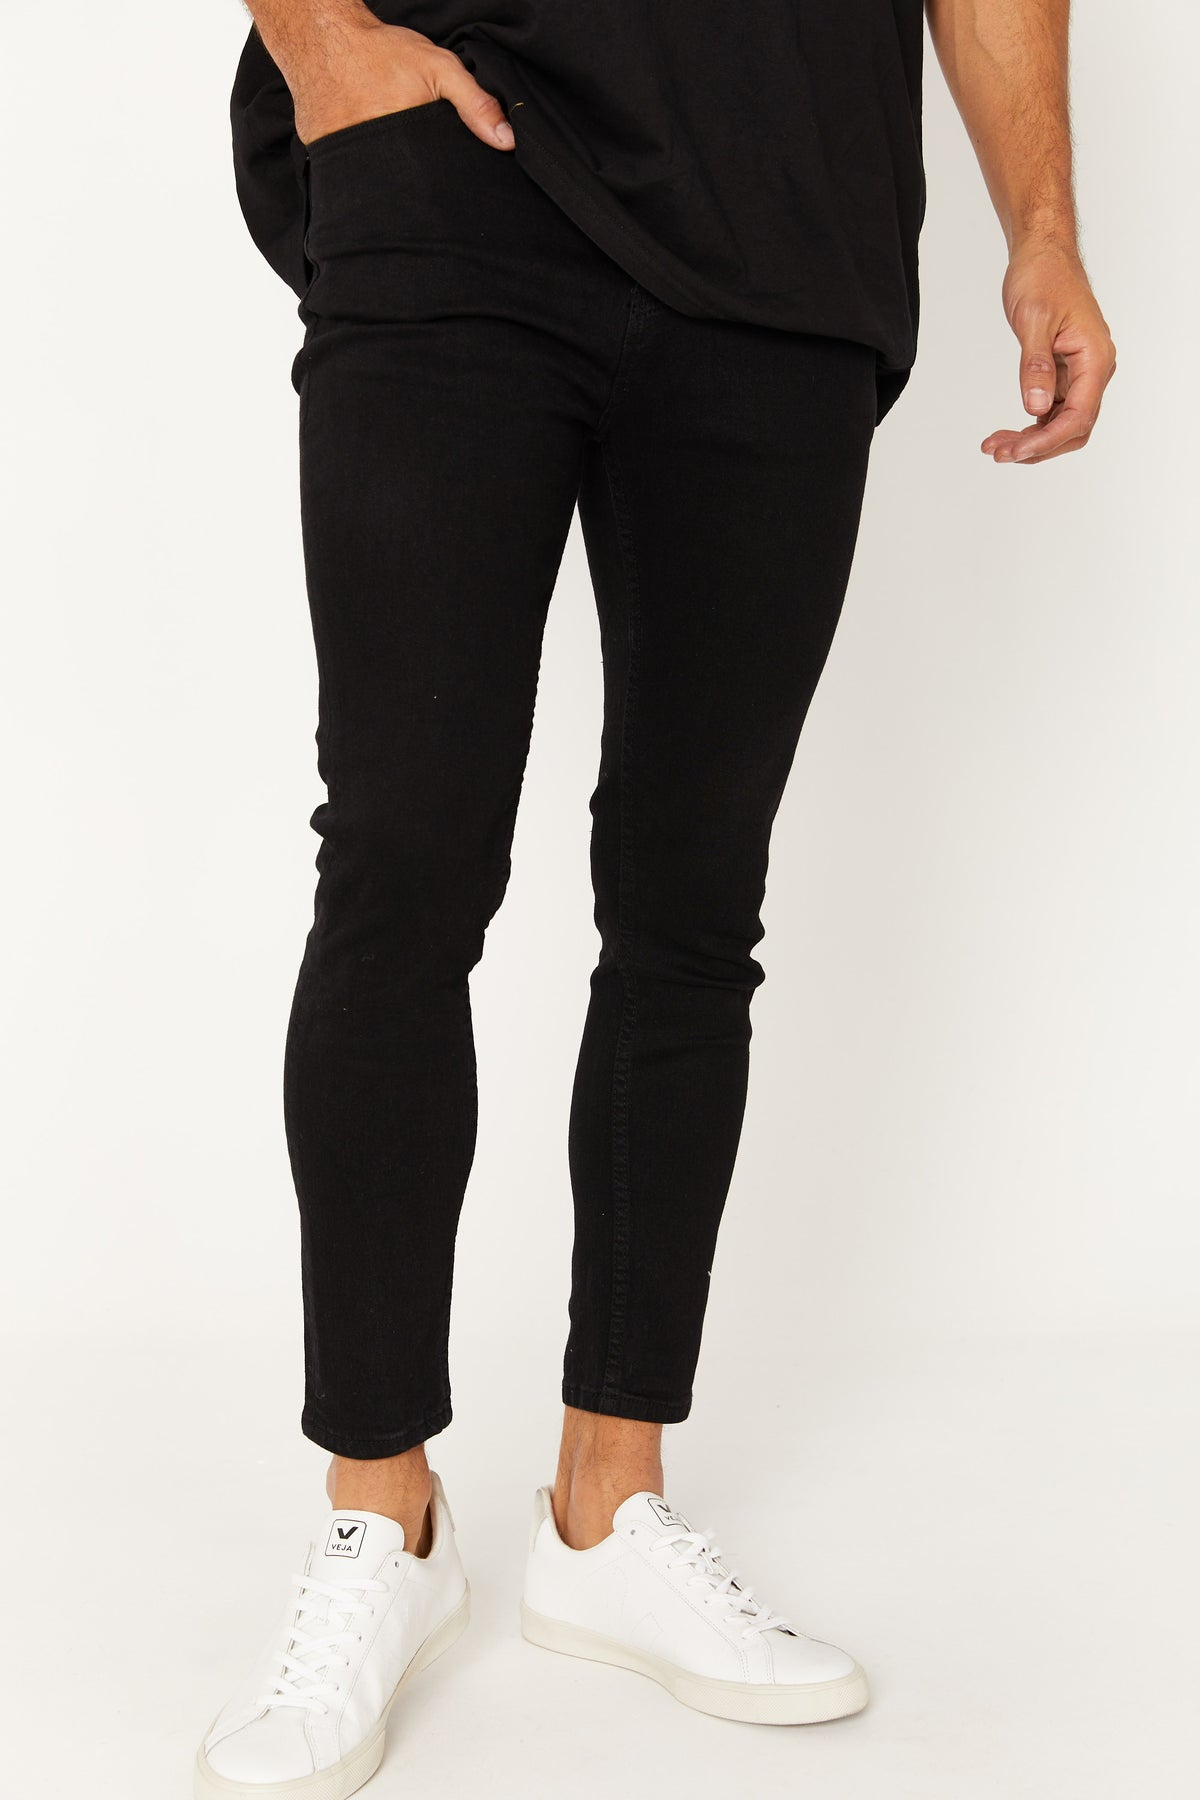 Nth Real Skinnys Solid Black